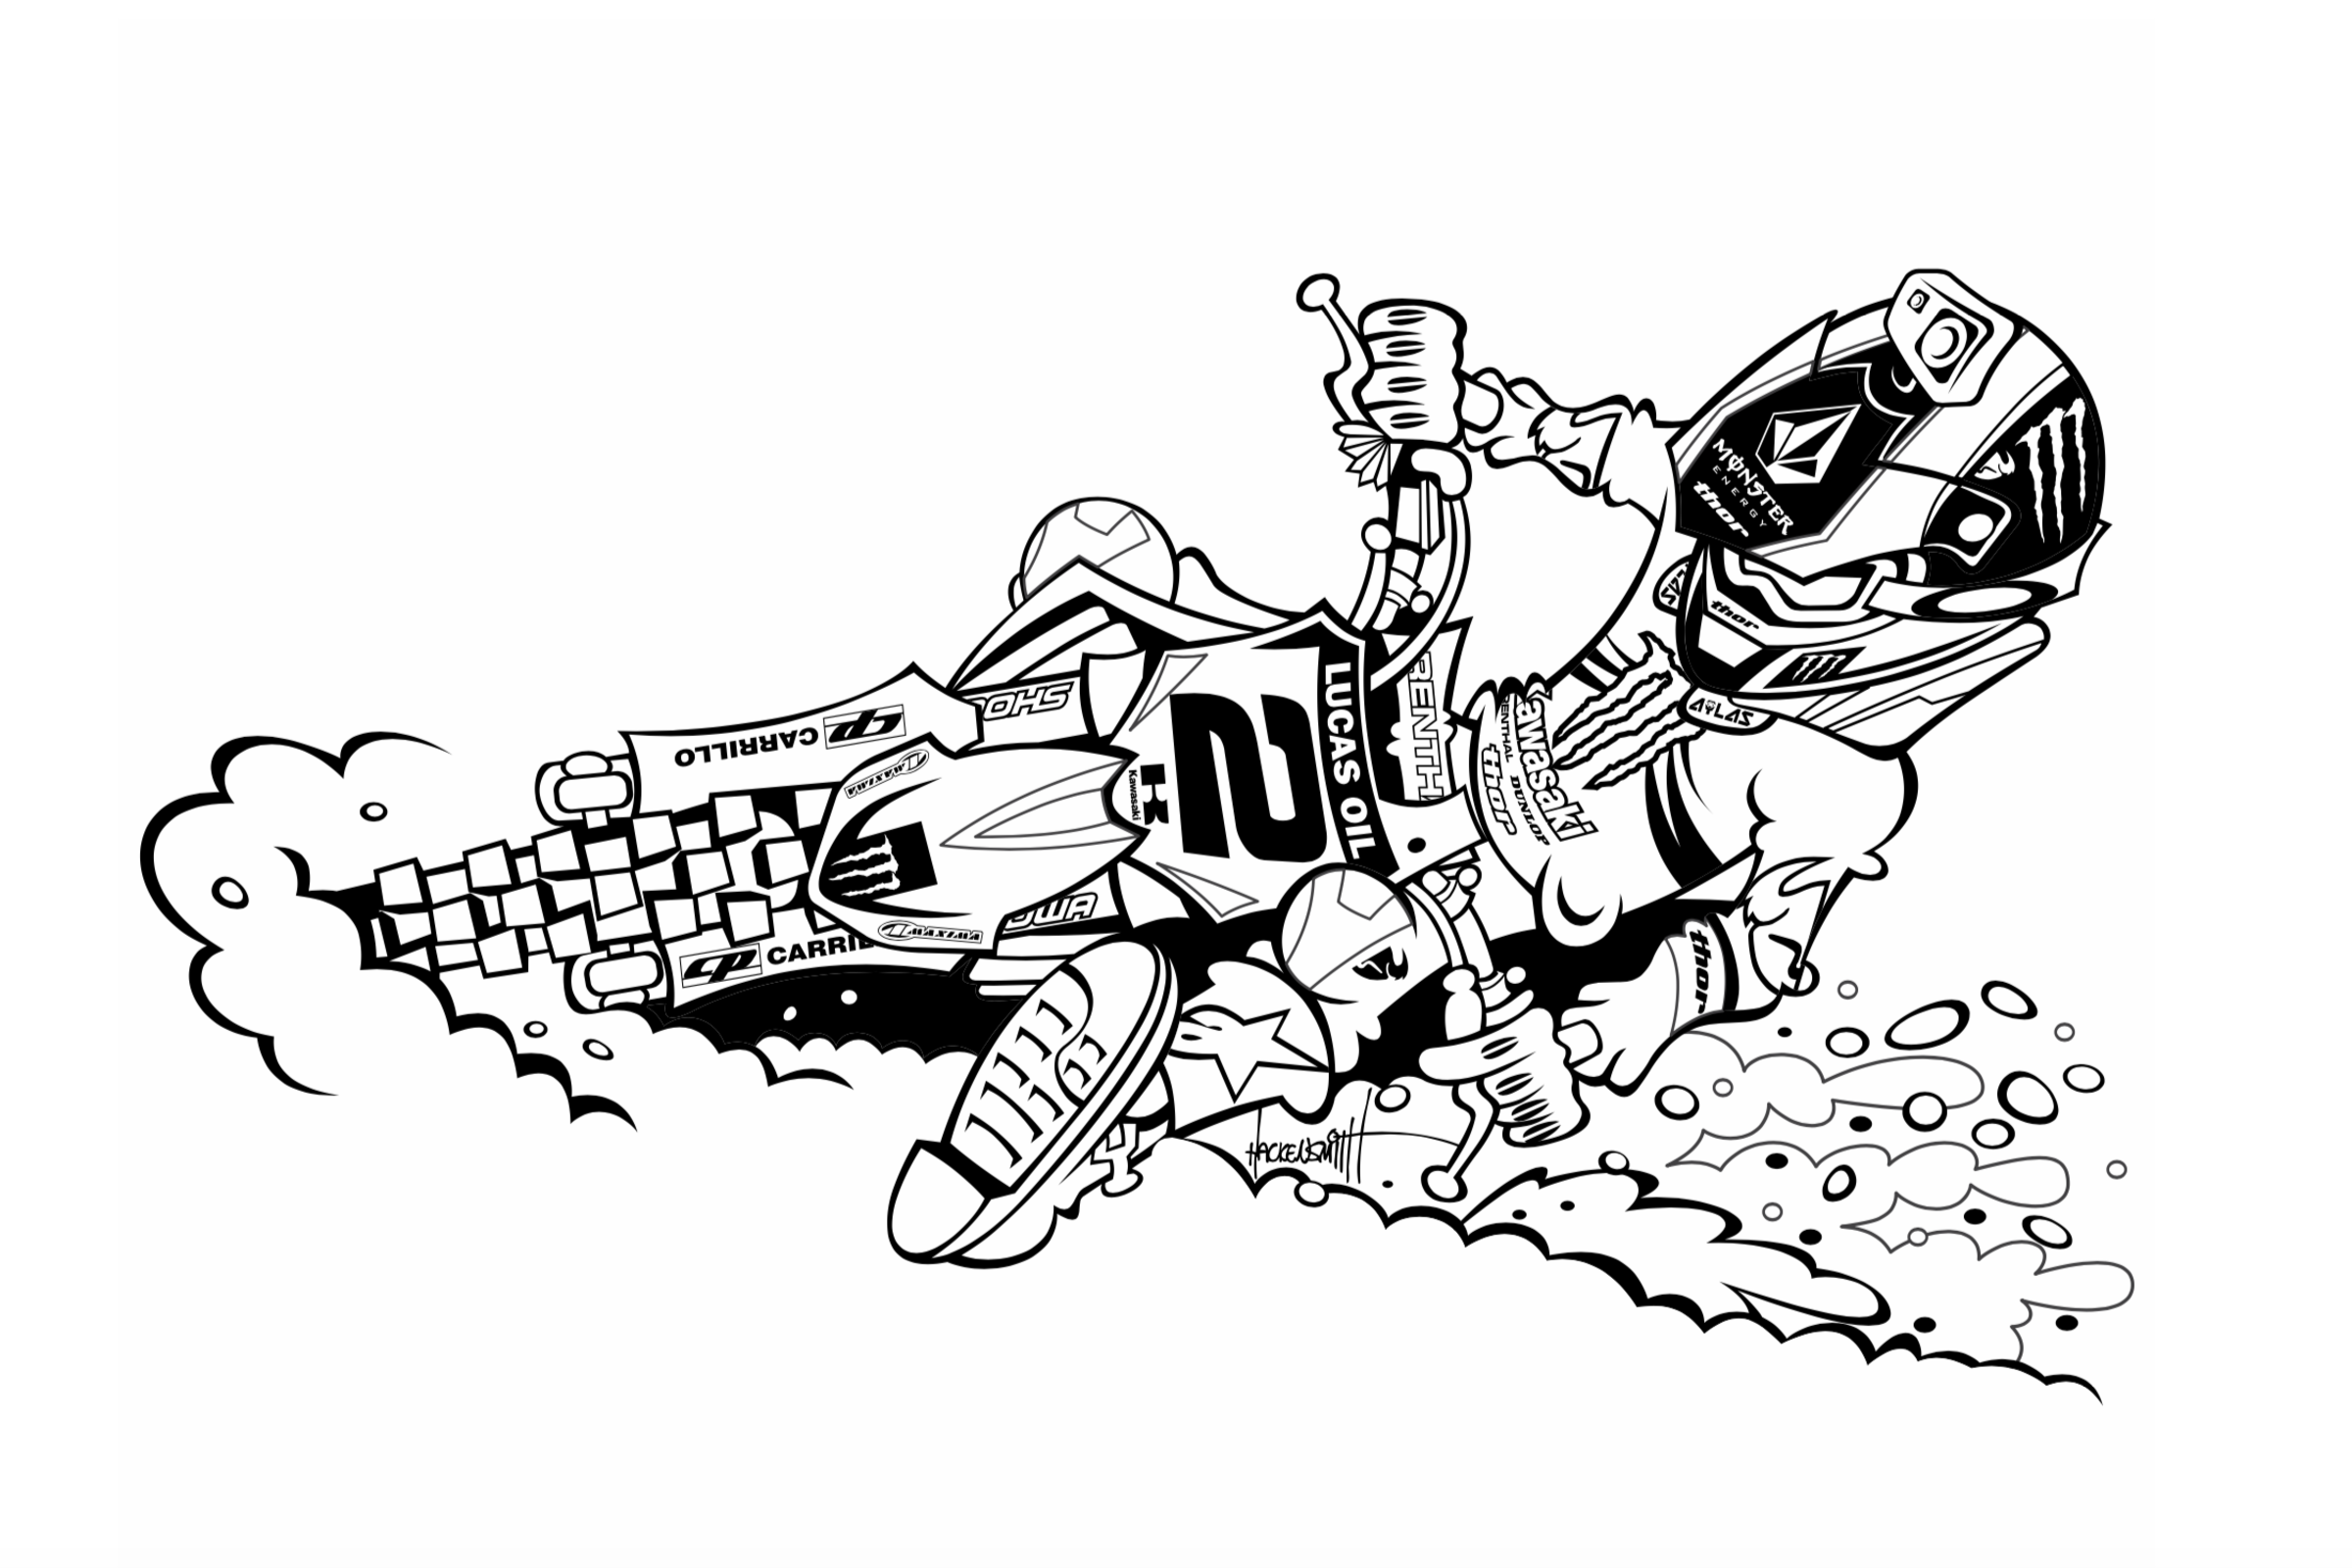 Downloadable Motocross Coloring Pages For Kids - Racer X Online